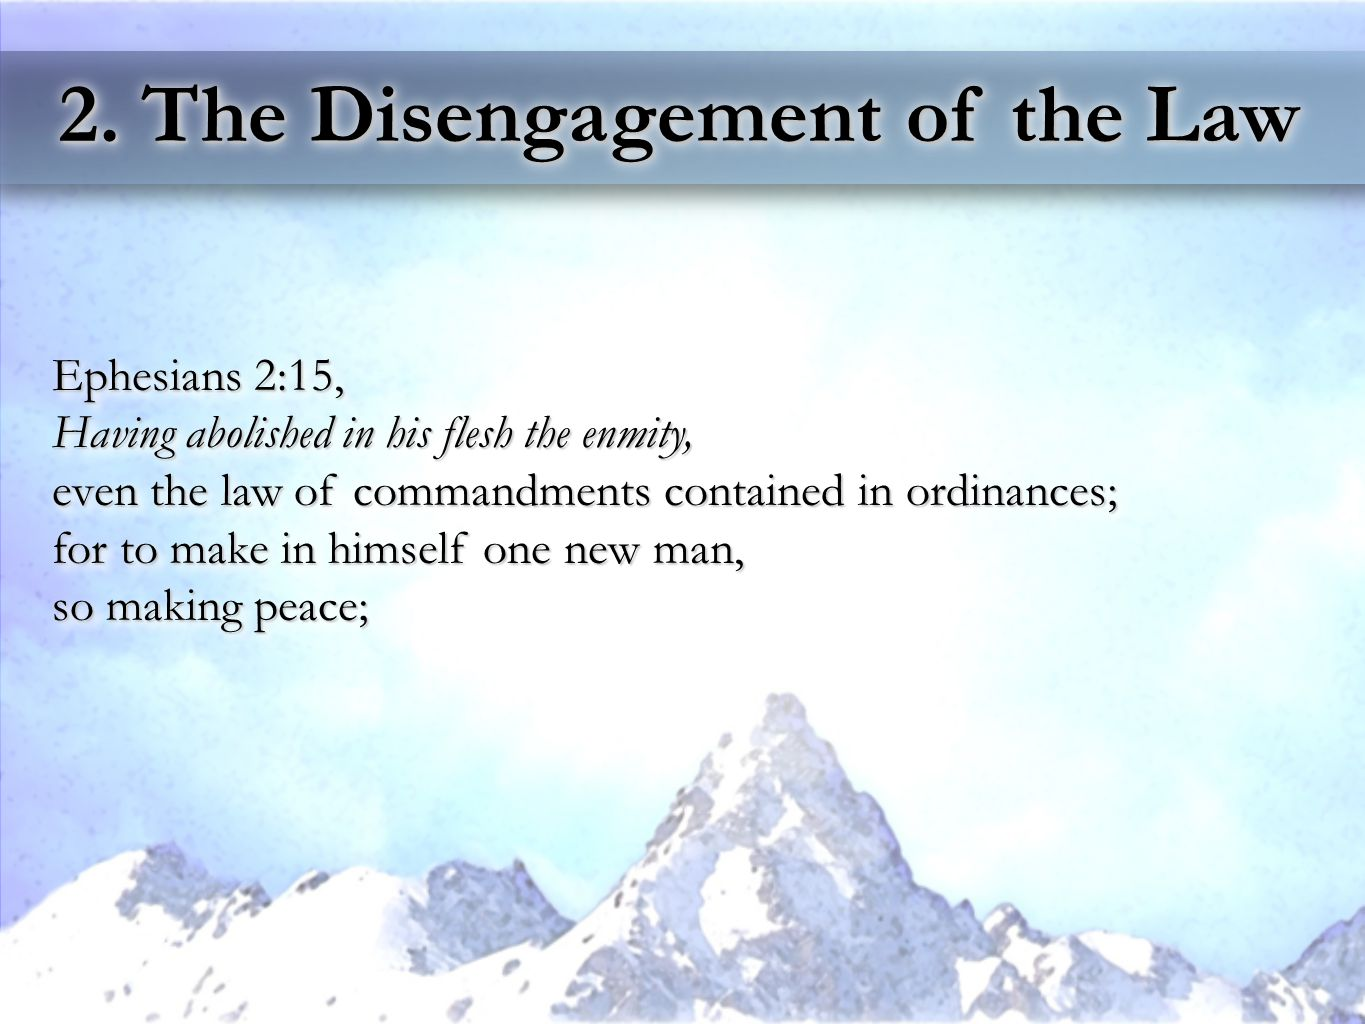 2. The Disengagement of the Law Ephesians 2:15, Having abolished in his flesh the enmity, even the law of commandments contained in ordinances; for to